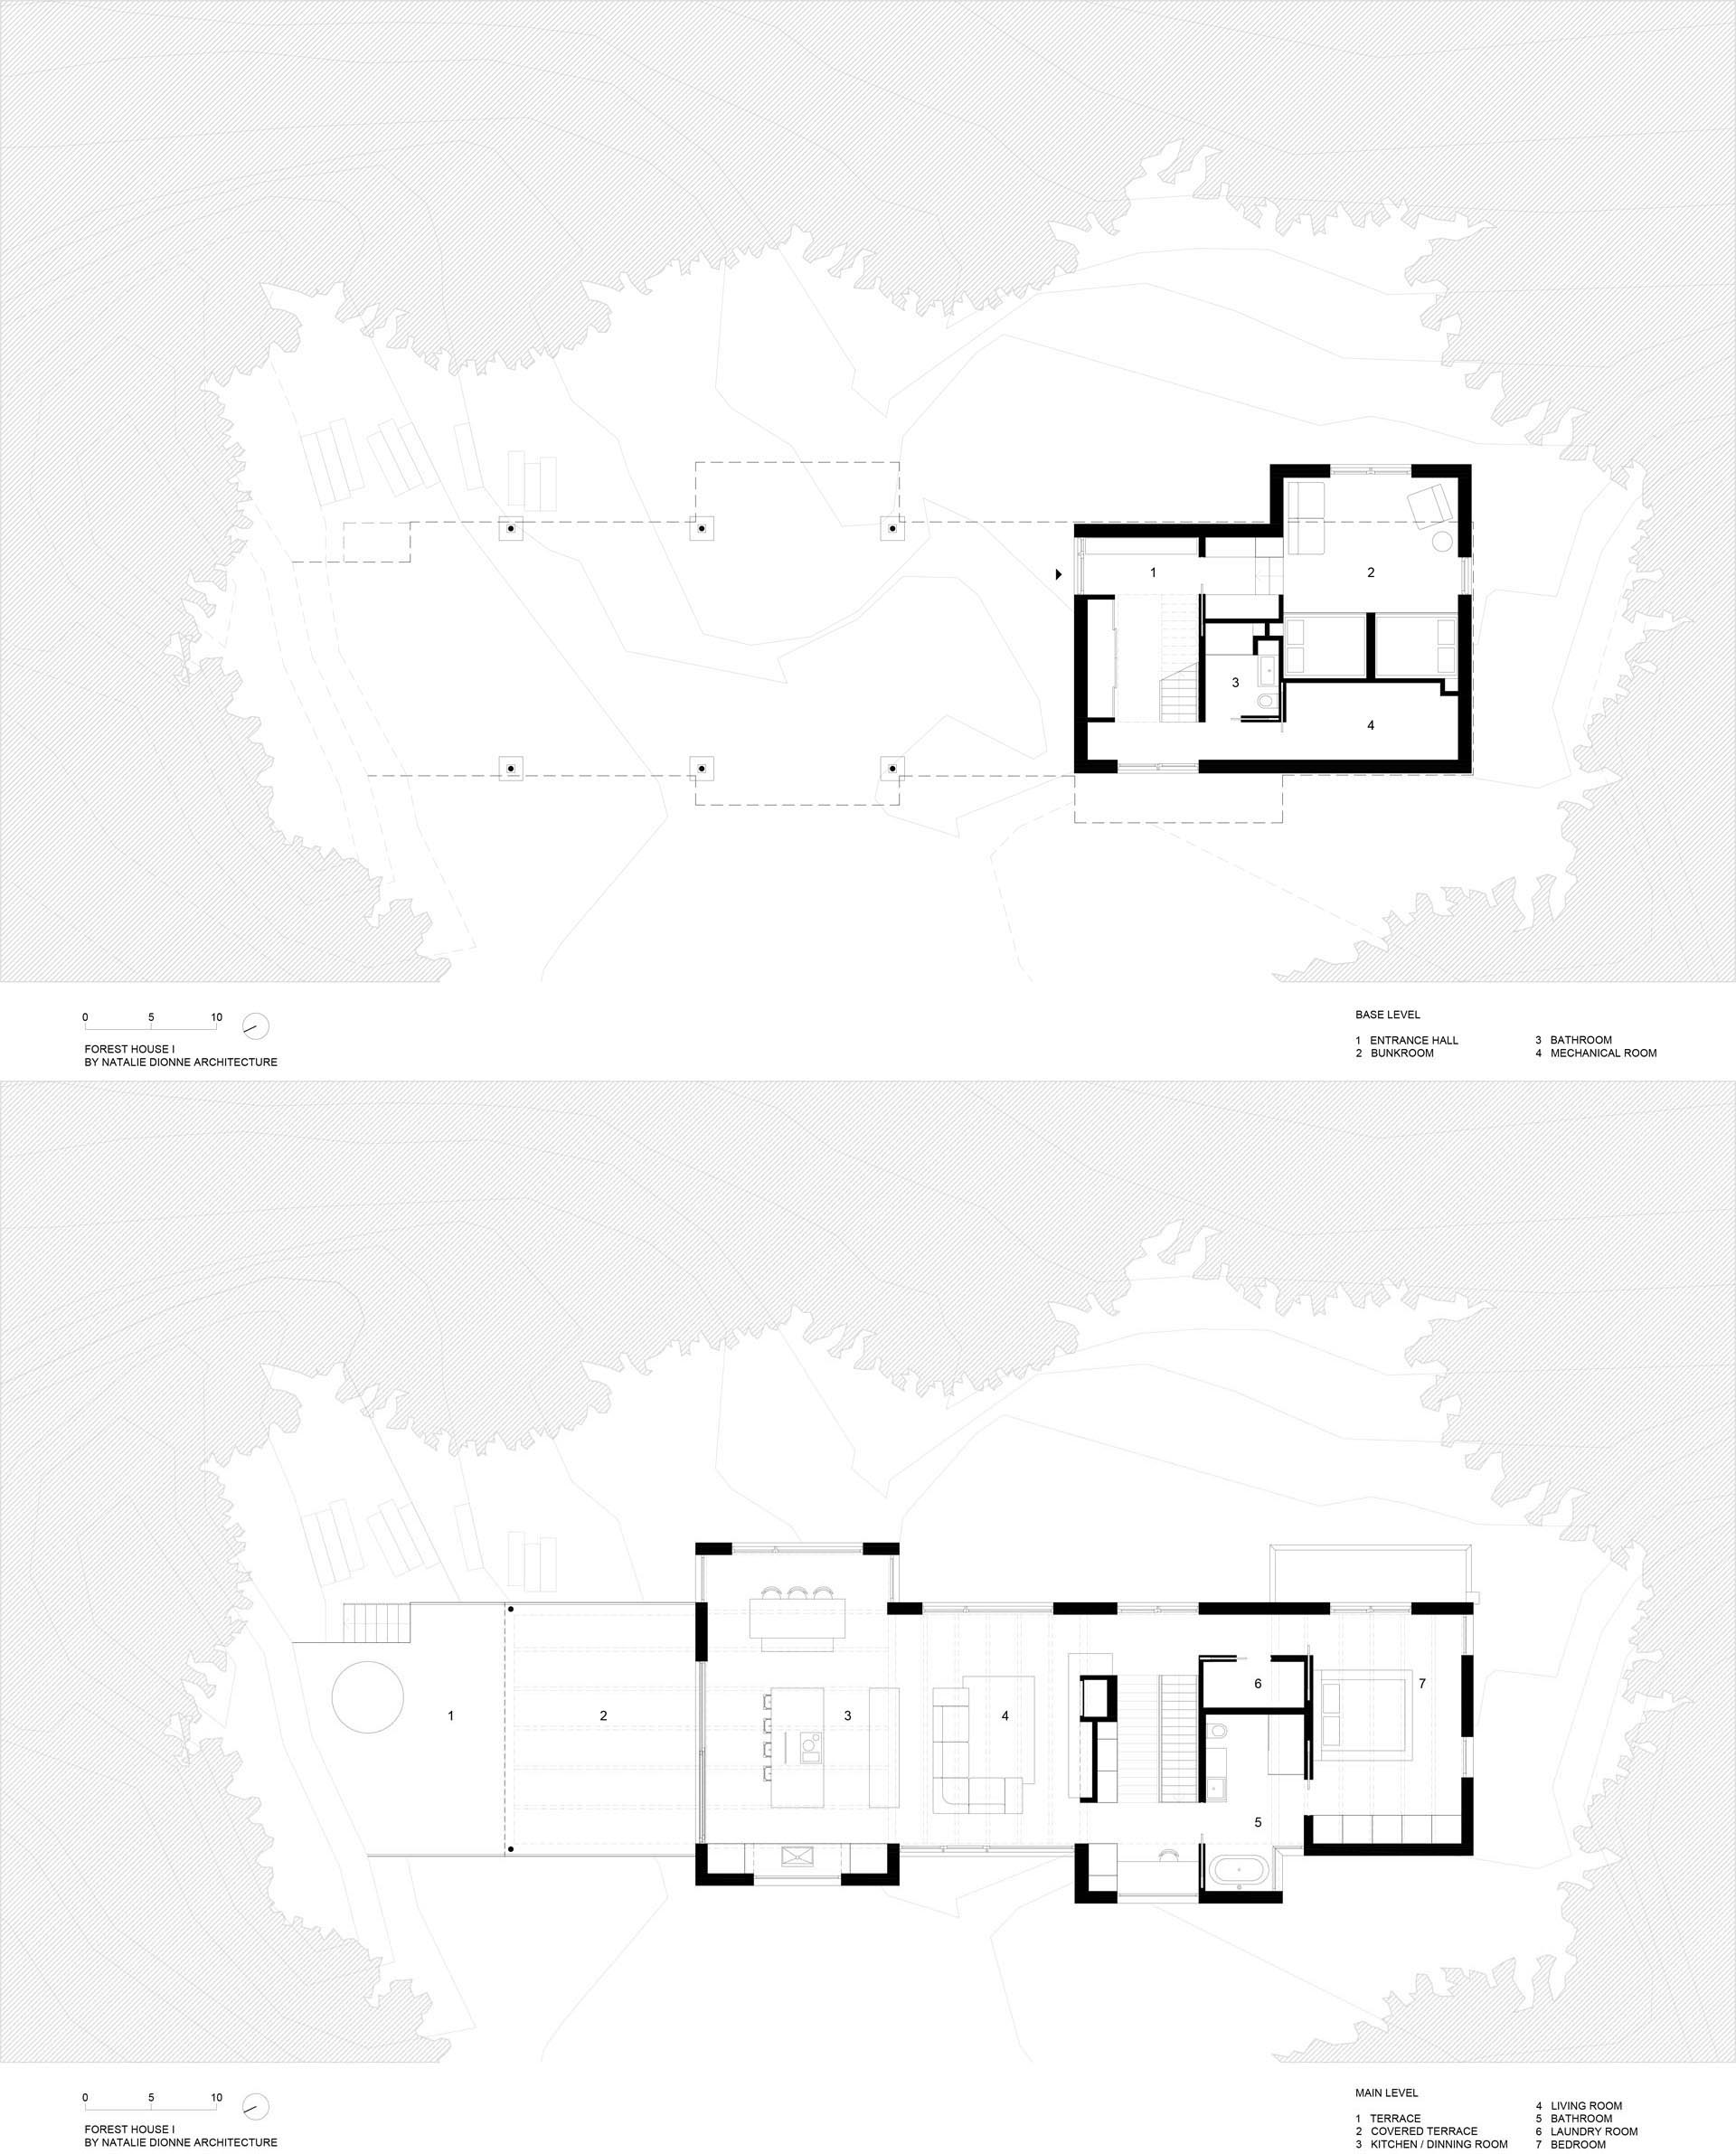 The floor plan of a modern two story home.